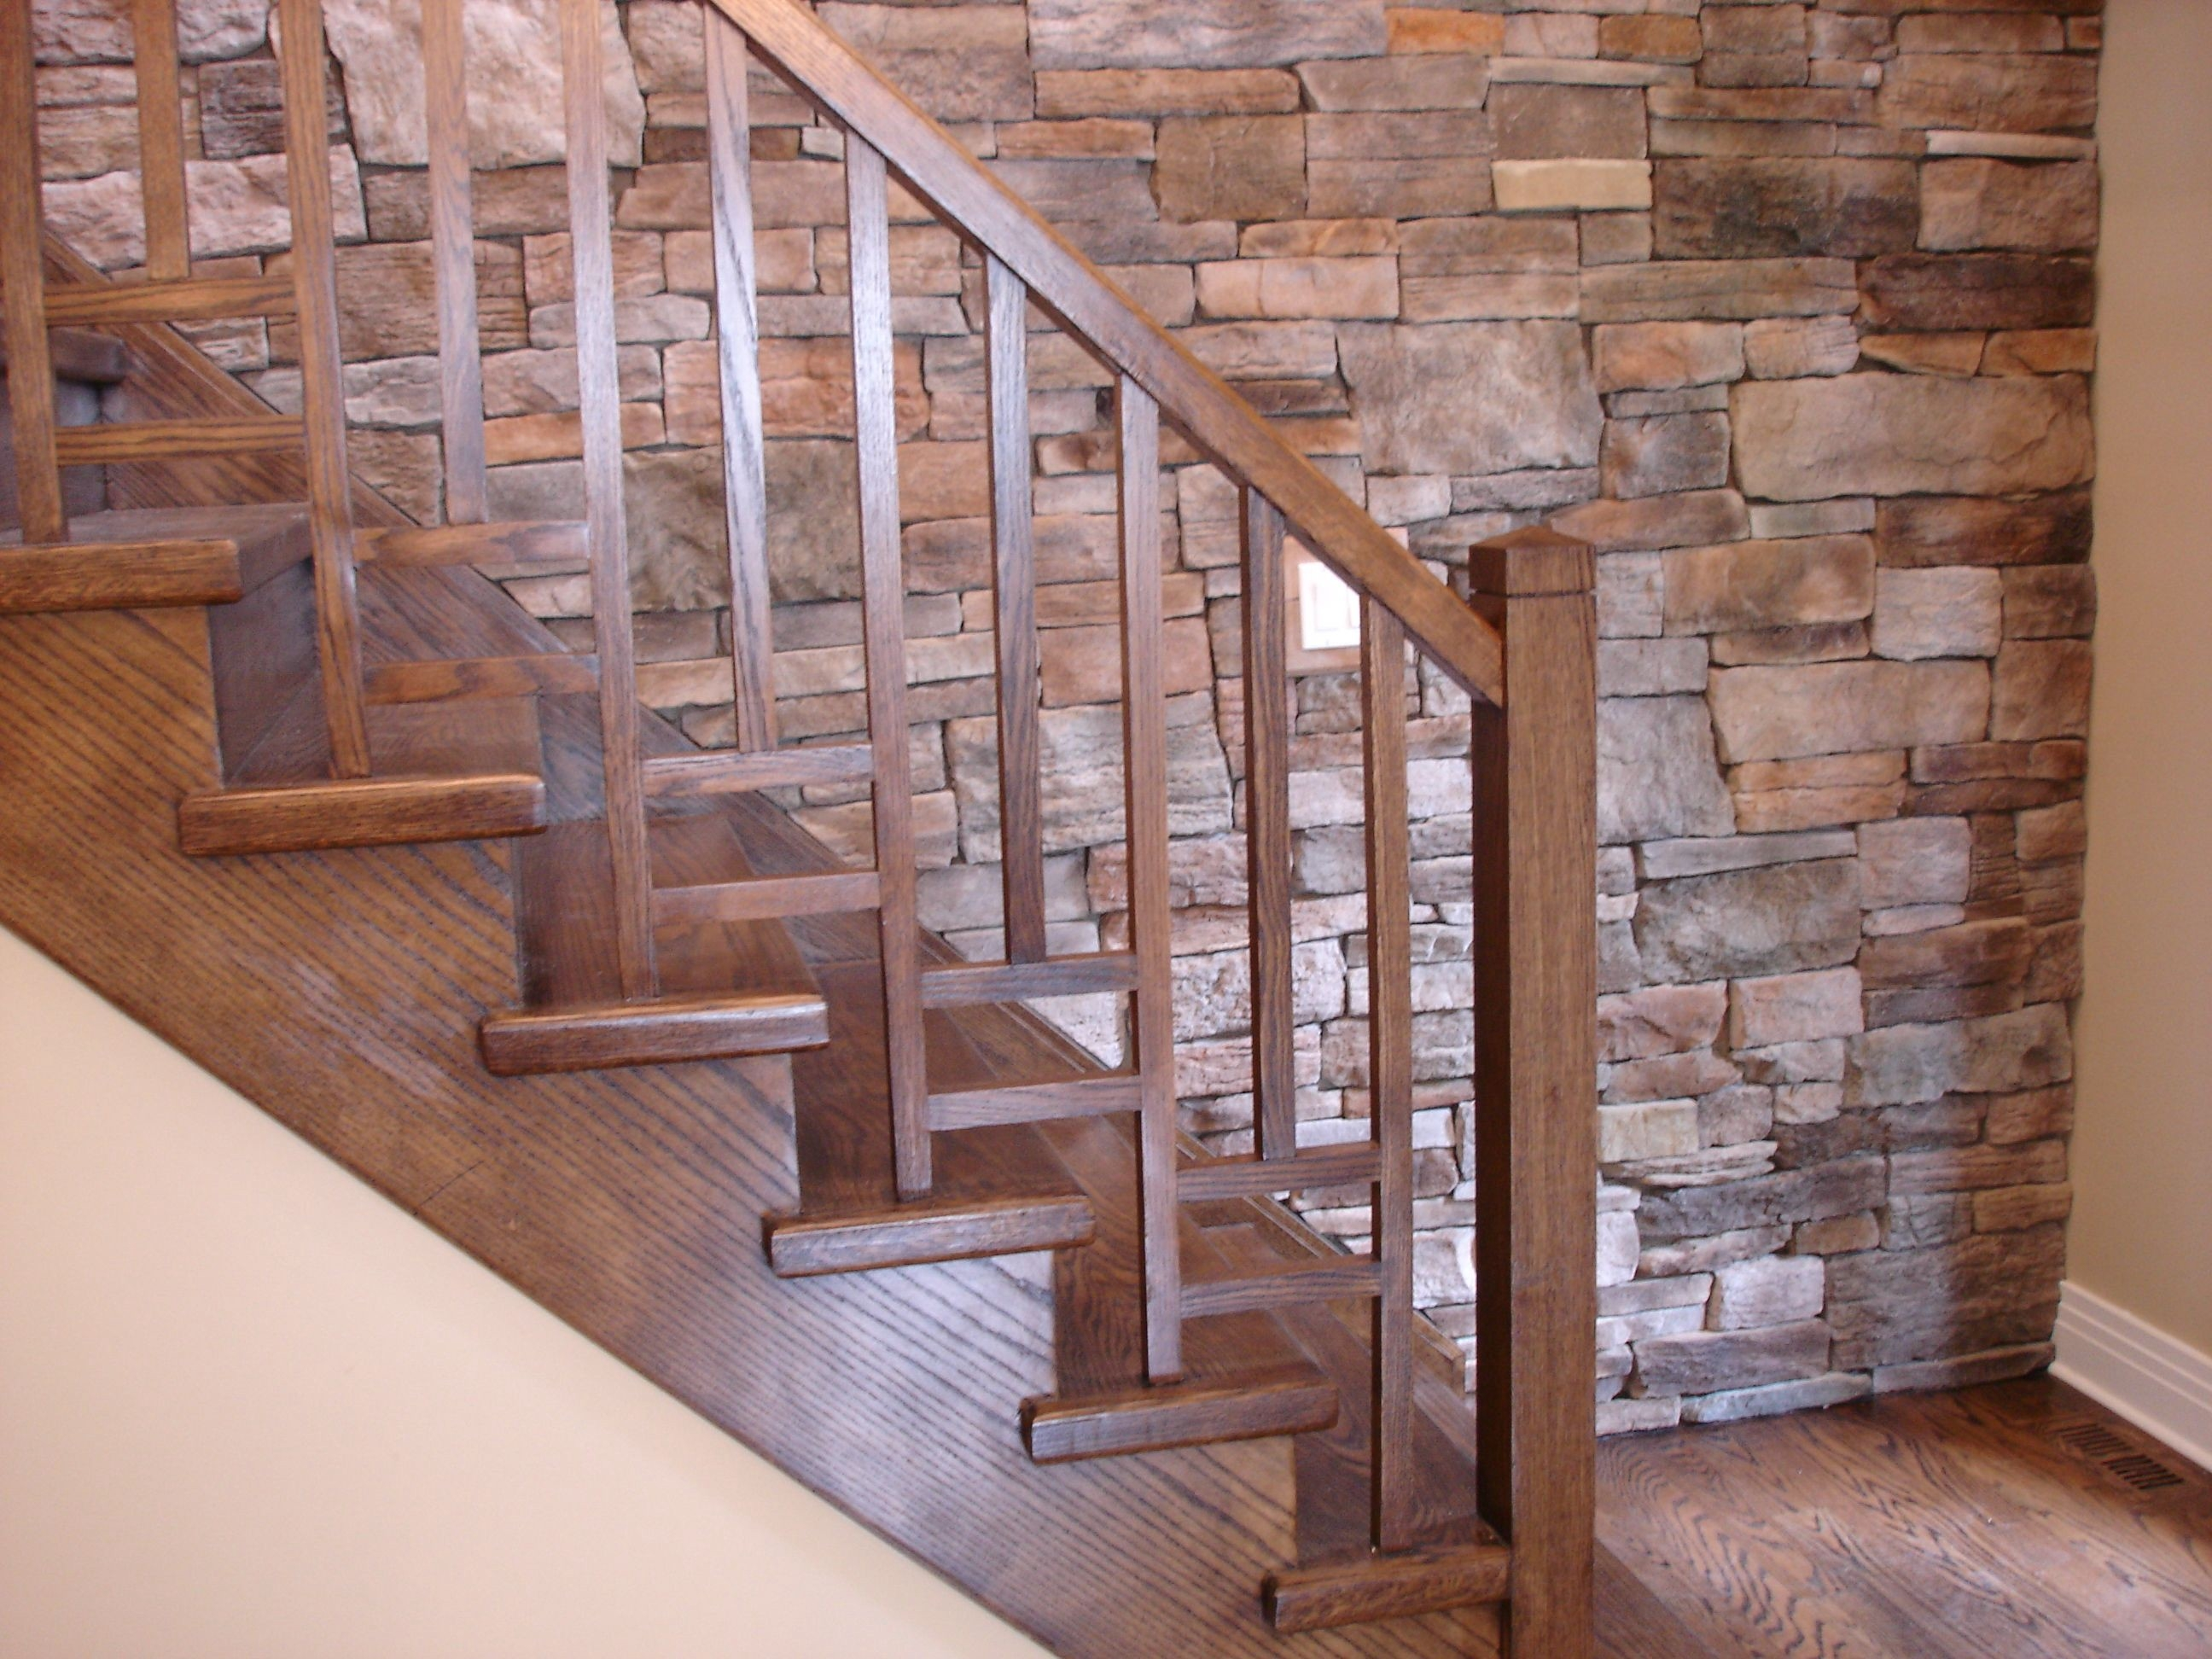 Modern Wood Stair Railing By Putra Sulung Medium | Modern Wood Stair Railing | Creative Outdoor Stair | Traditional | Indoor | Balustrade | Cherry Wood